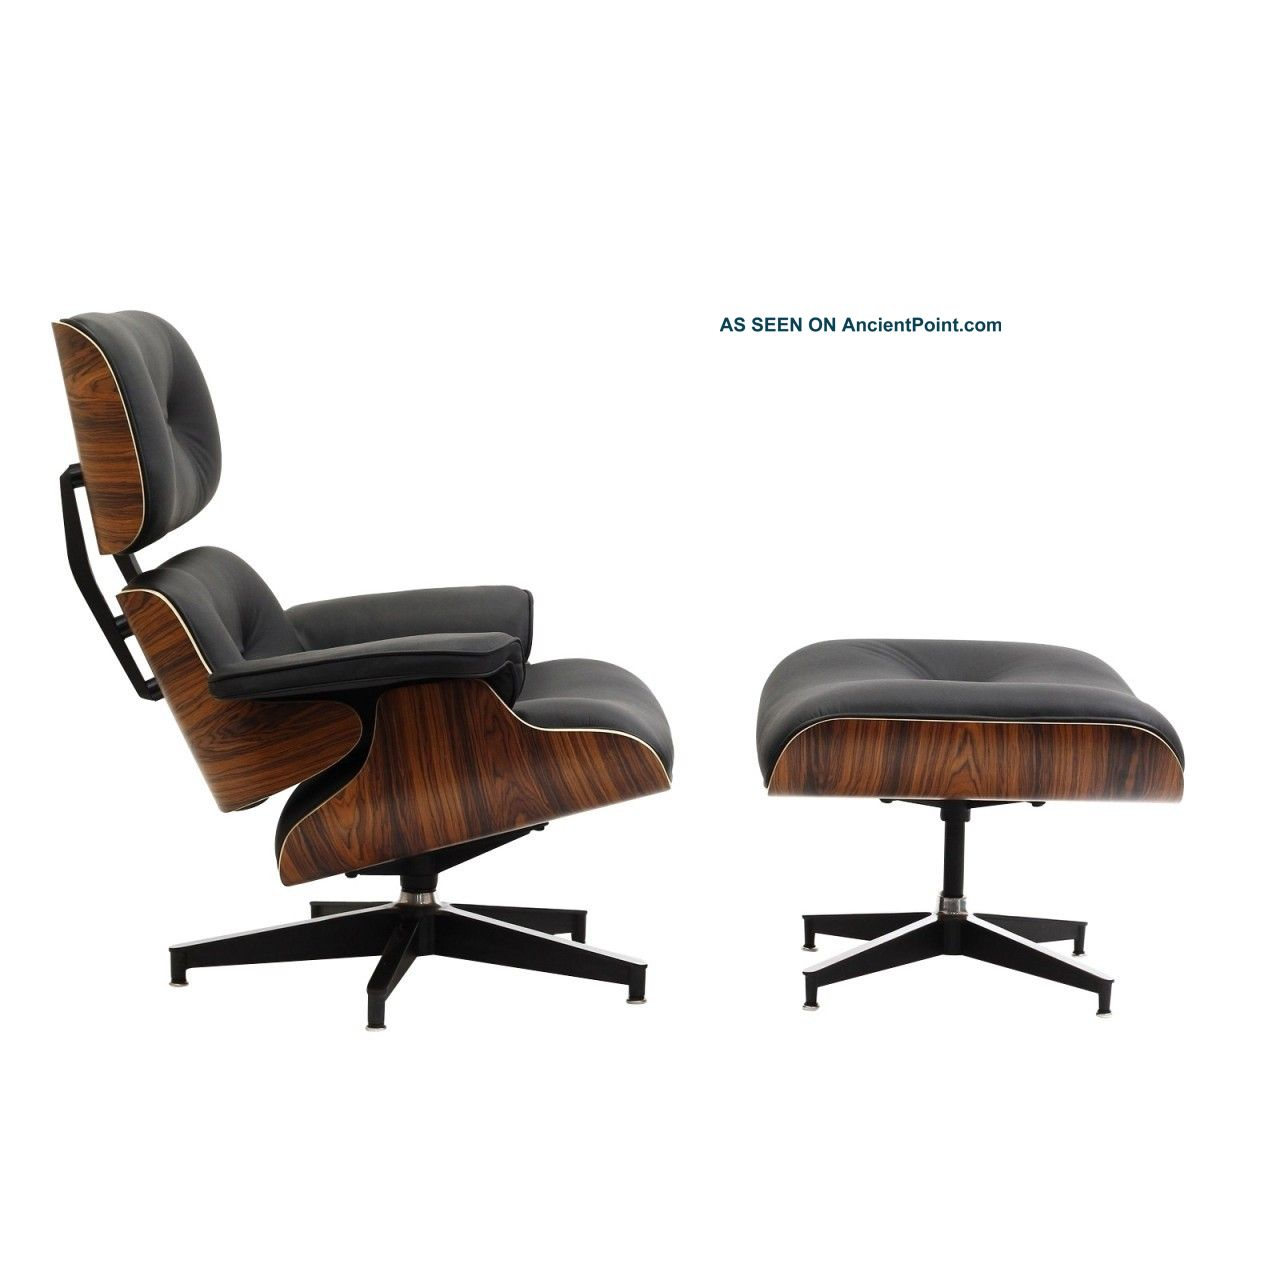 Very Impressive portraiture of Style Lounge Chair And Ottoman In Black Leather With Palisander Wood  with #673F2A color and 1280x1280 pixels